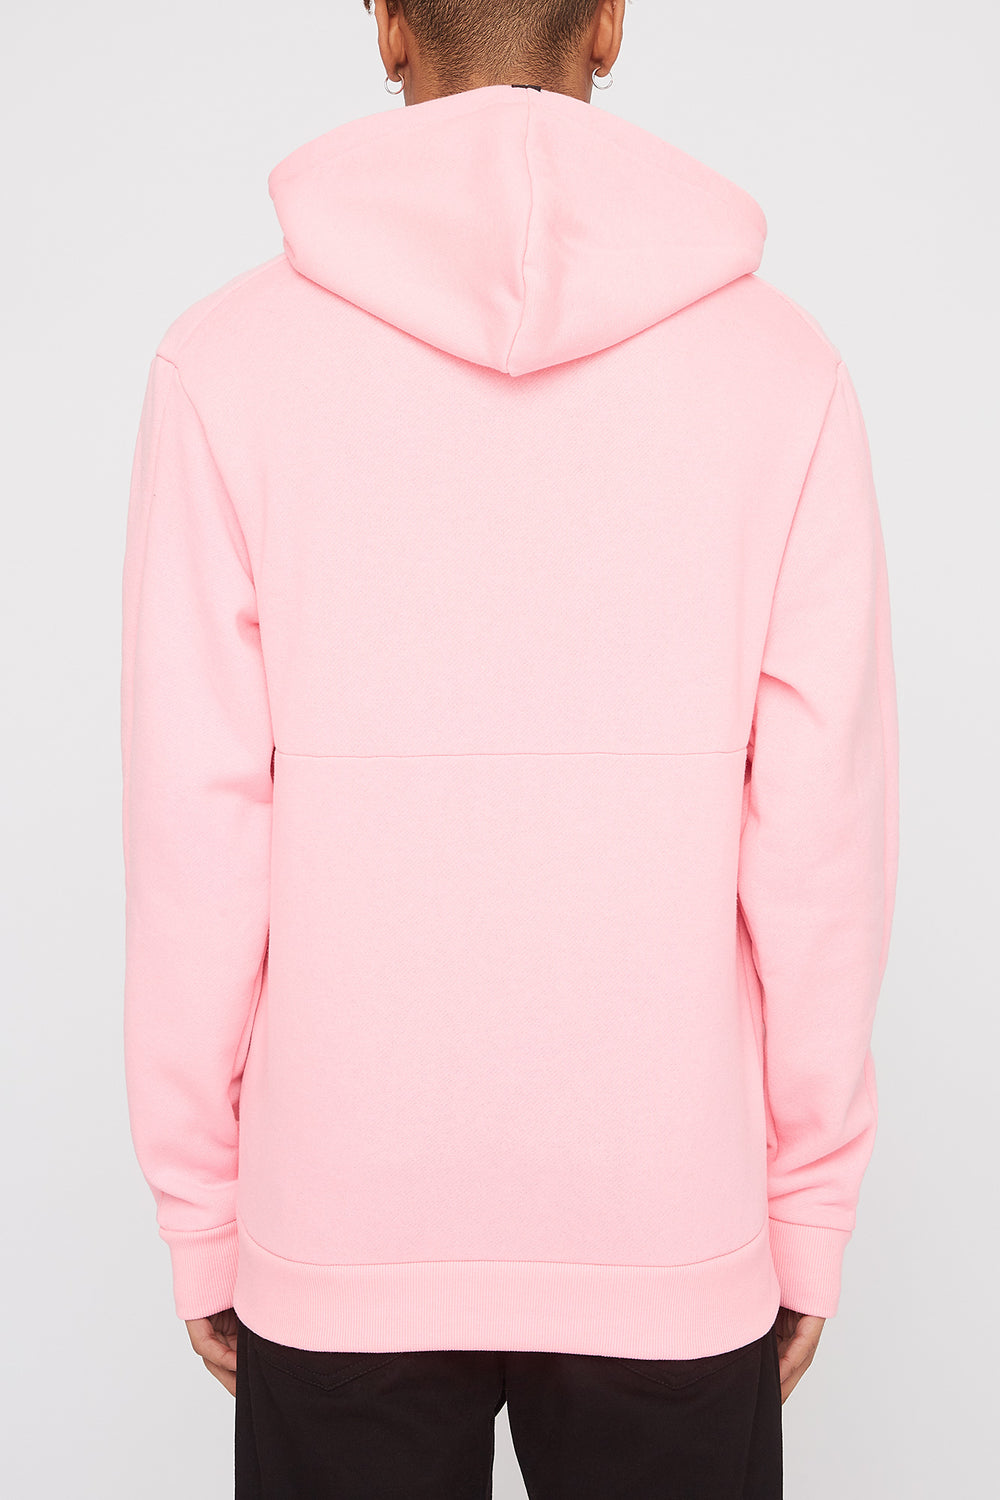 Zoo York Mens Embroidered Logo Hoodie Neon Pink